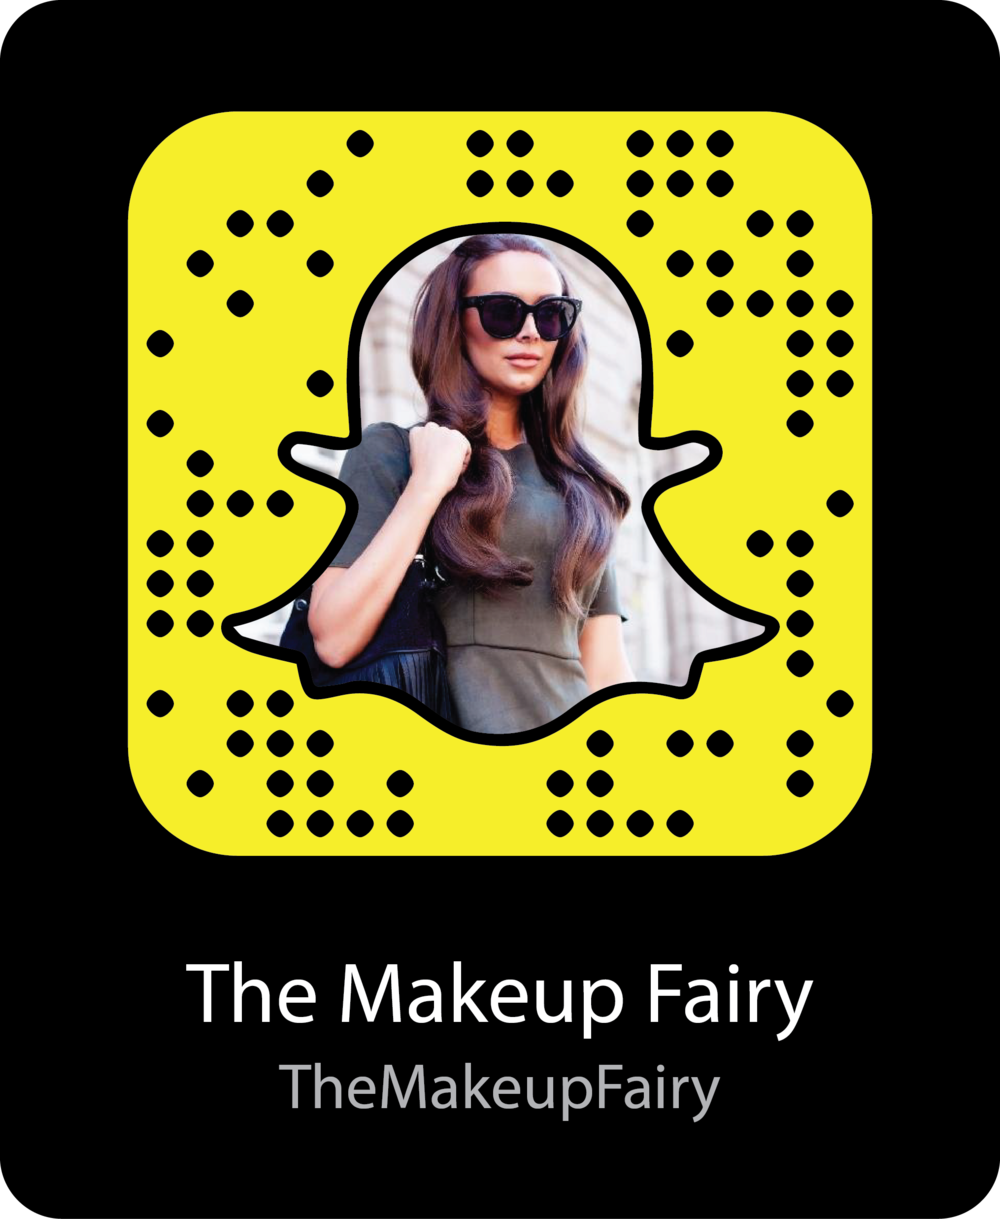 TheMakeupFairy-Beauty-Bloggers-snapchat-snapcode.png